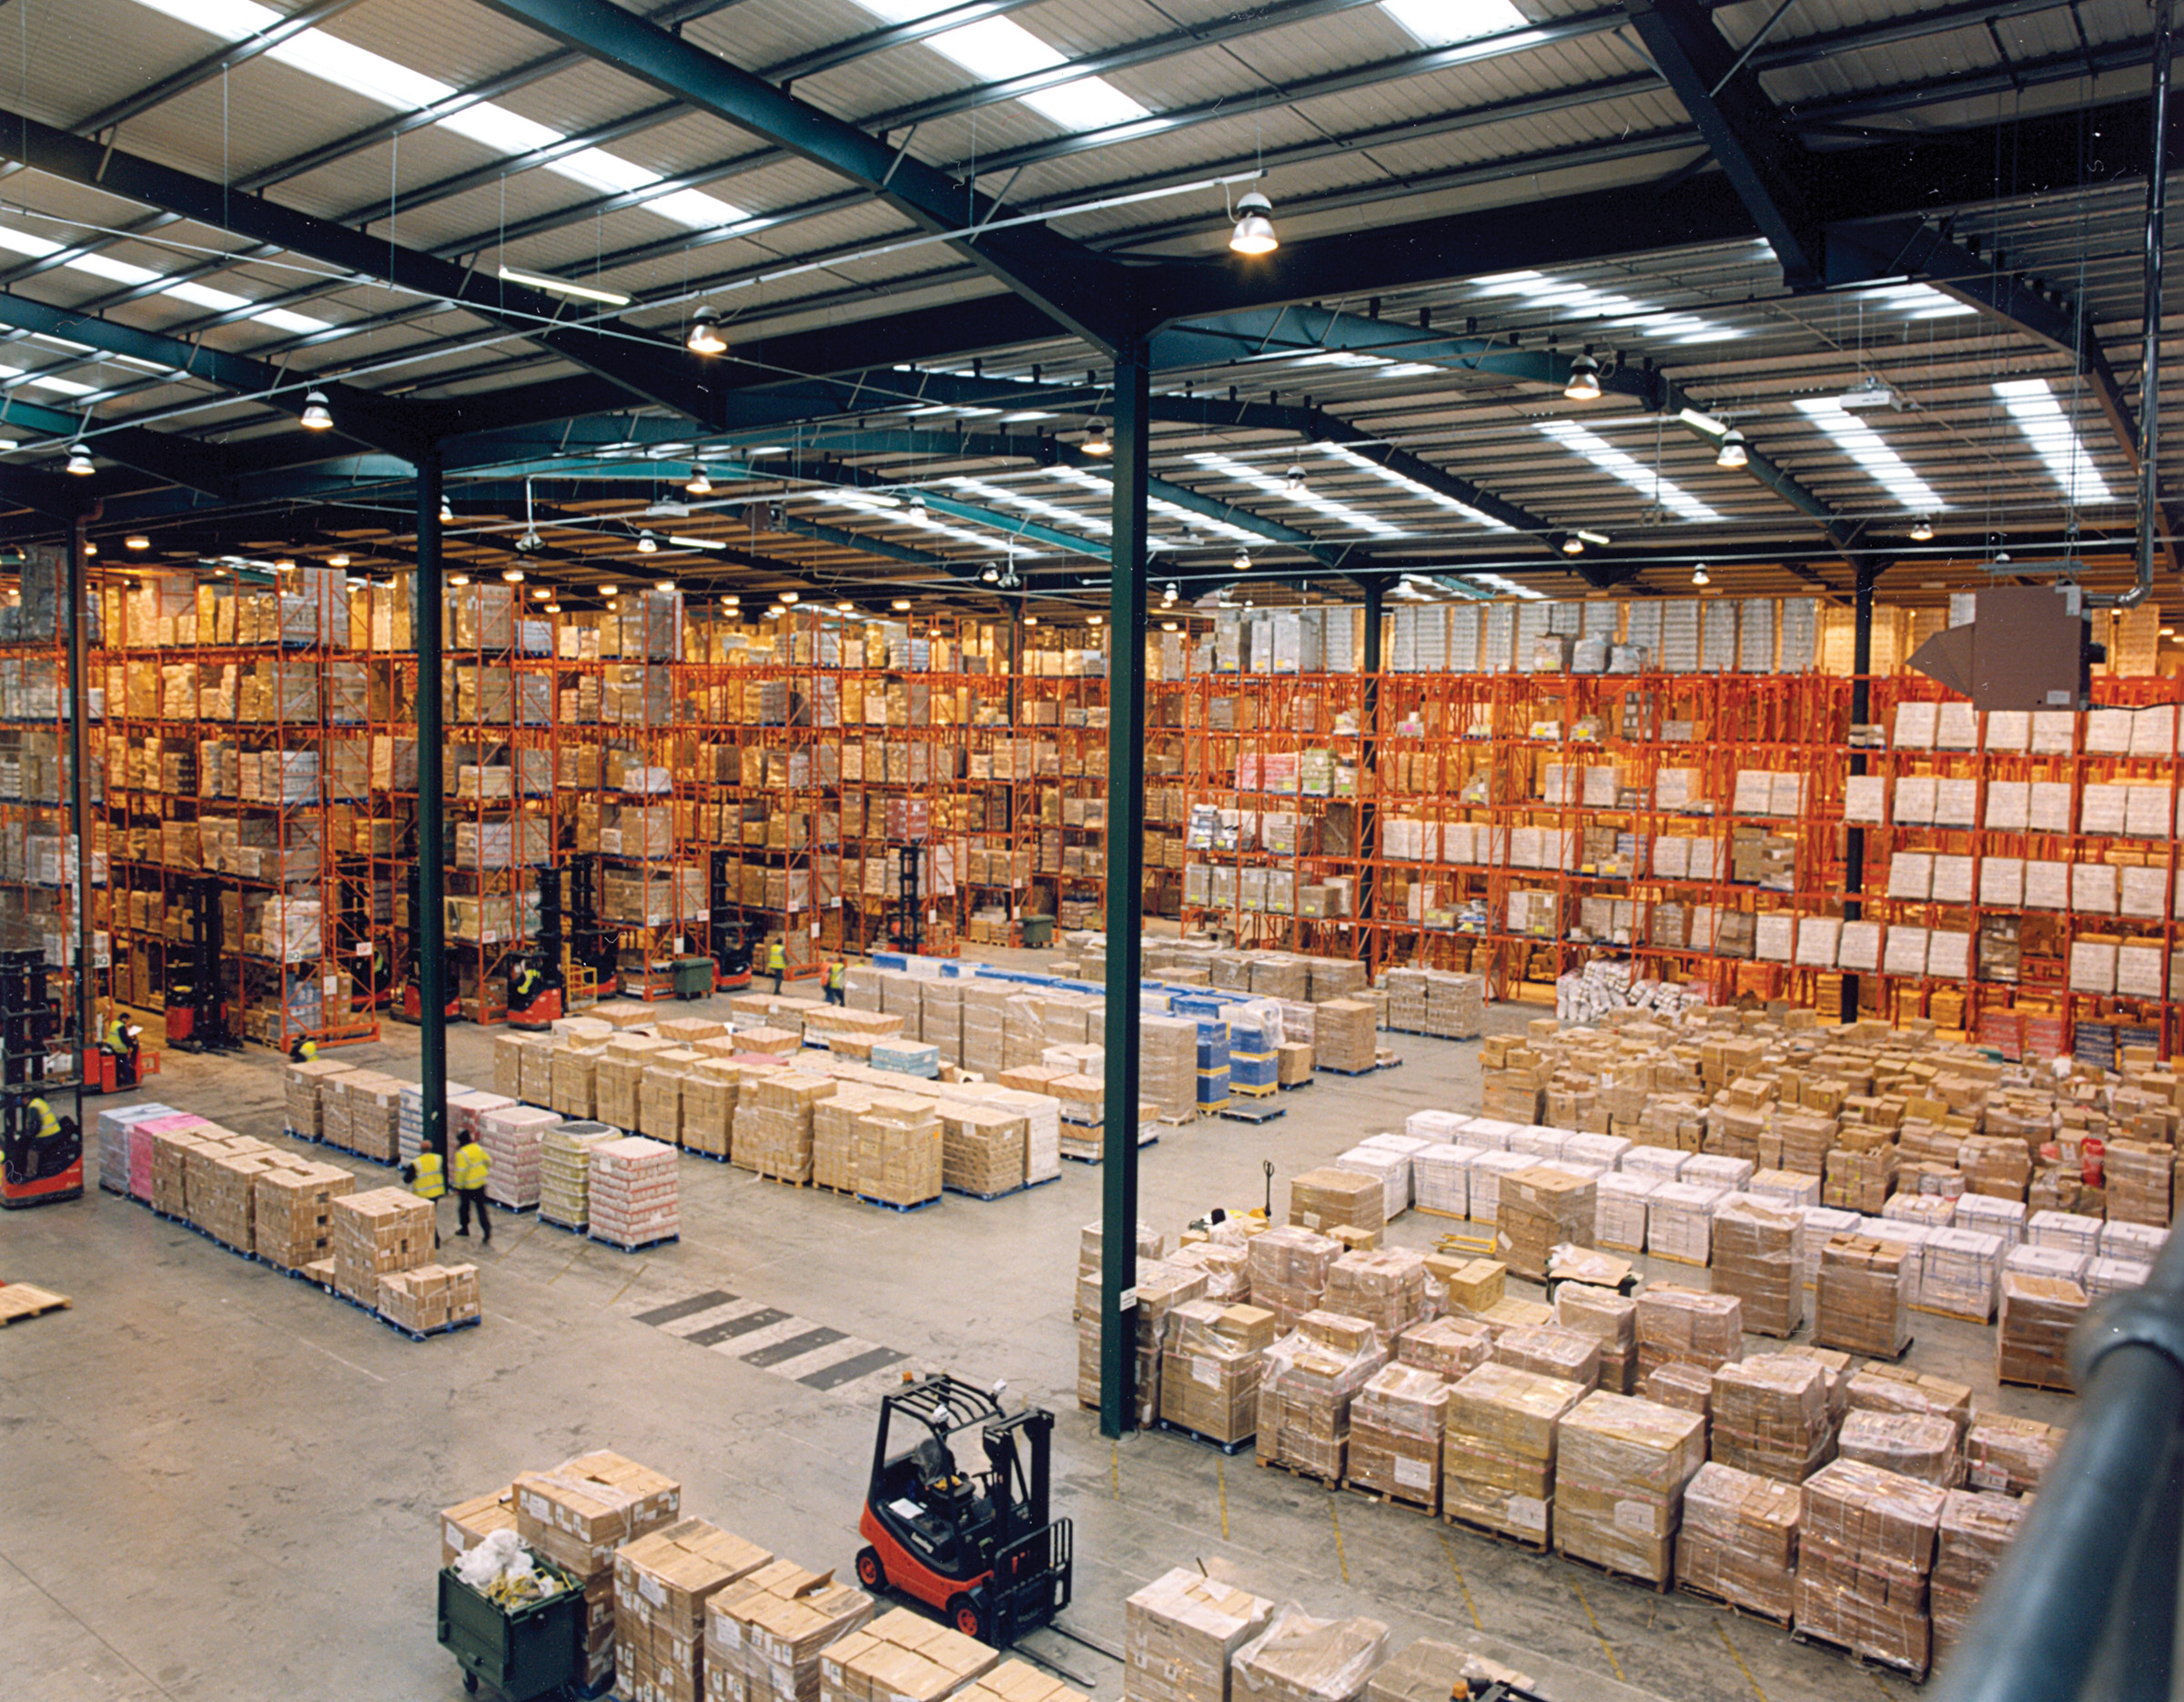 Warehouse Management with use of equipment